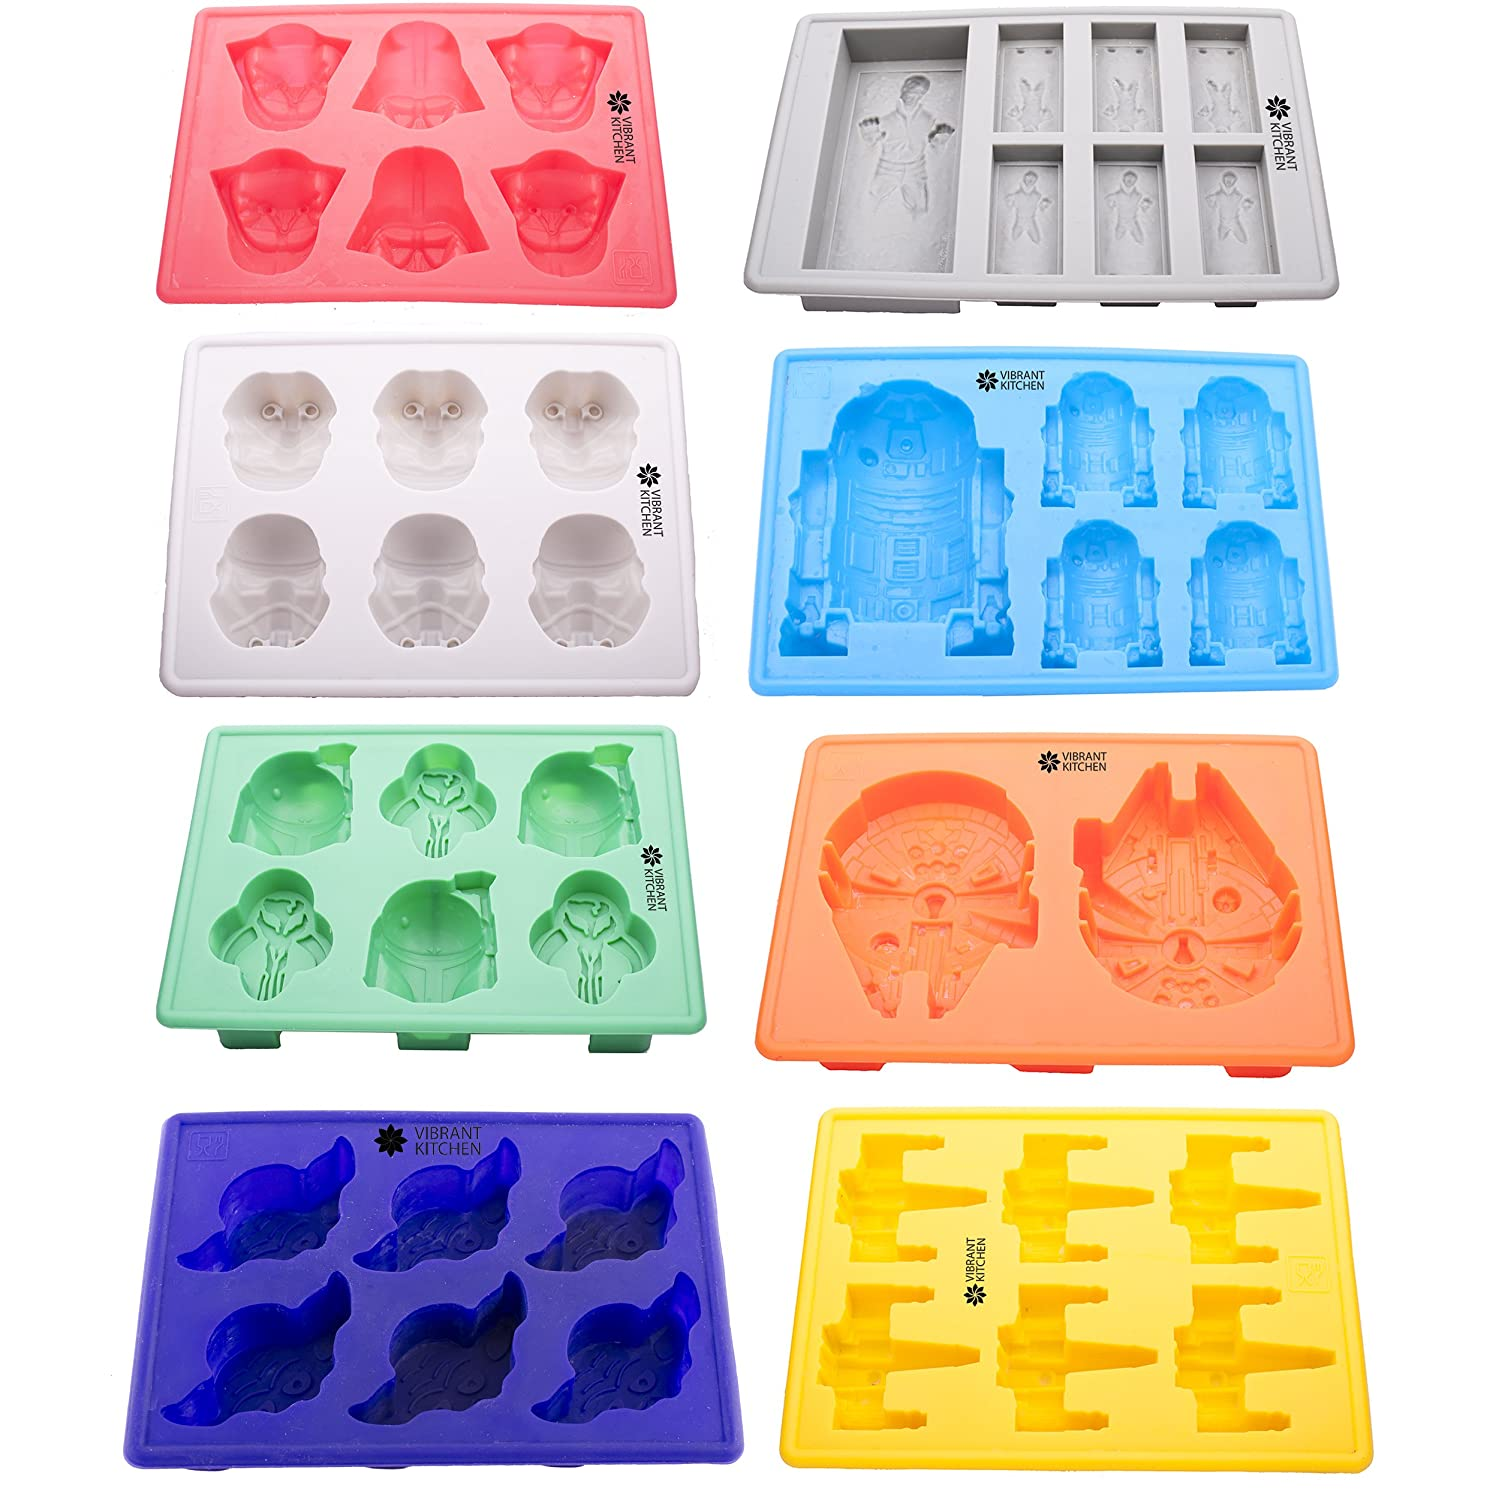 Set of 8 Star Wars Silicone Tray Ice Cube And Candy Mold by Vibrant Kitchen for Baking Candy And Soap Making & Gift E-book